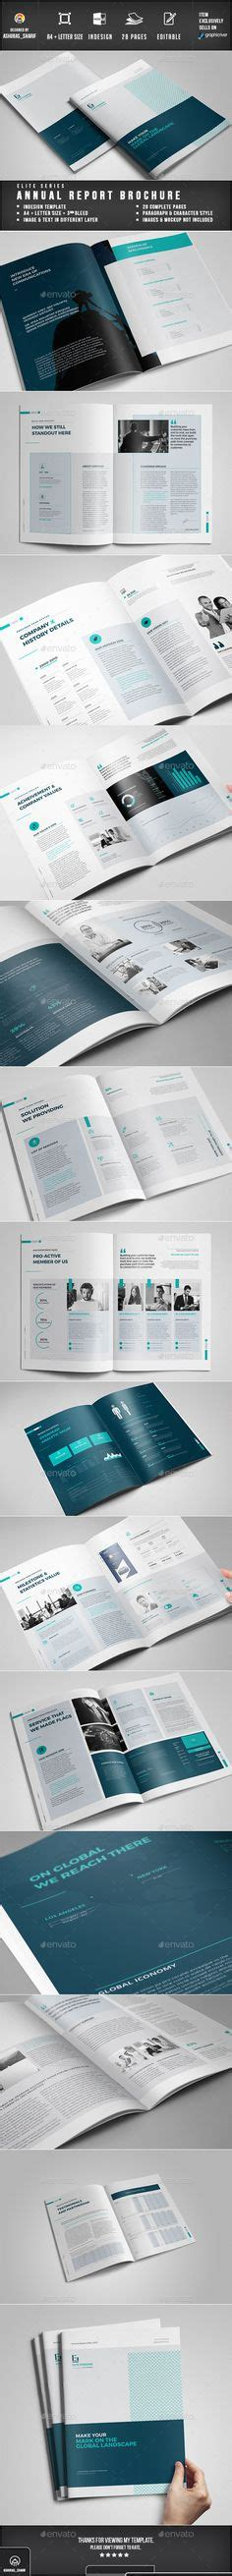 Https Graphicriver Net Item Divided Annual Report Template 13185075 디자인 리플렛 검색 리플릿 S 246 K